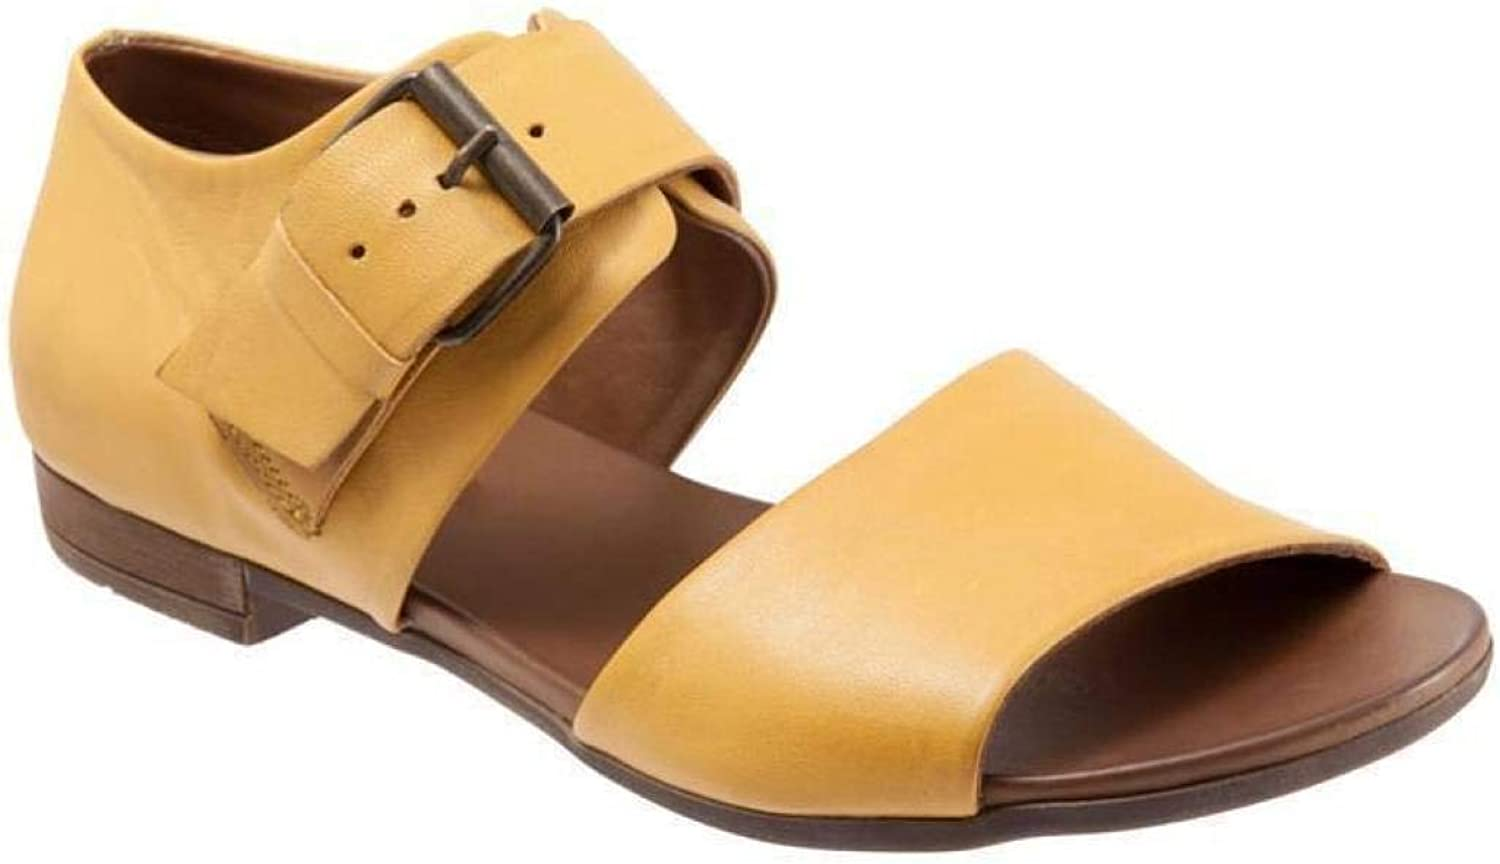 MEIZOKEN Women's Peep Toe Gladiator Sandals Ankle Buckle Low Chunky Block Heel Hollow Out Casual Flat Sandal Yellow